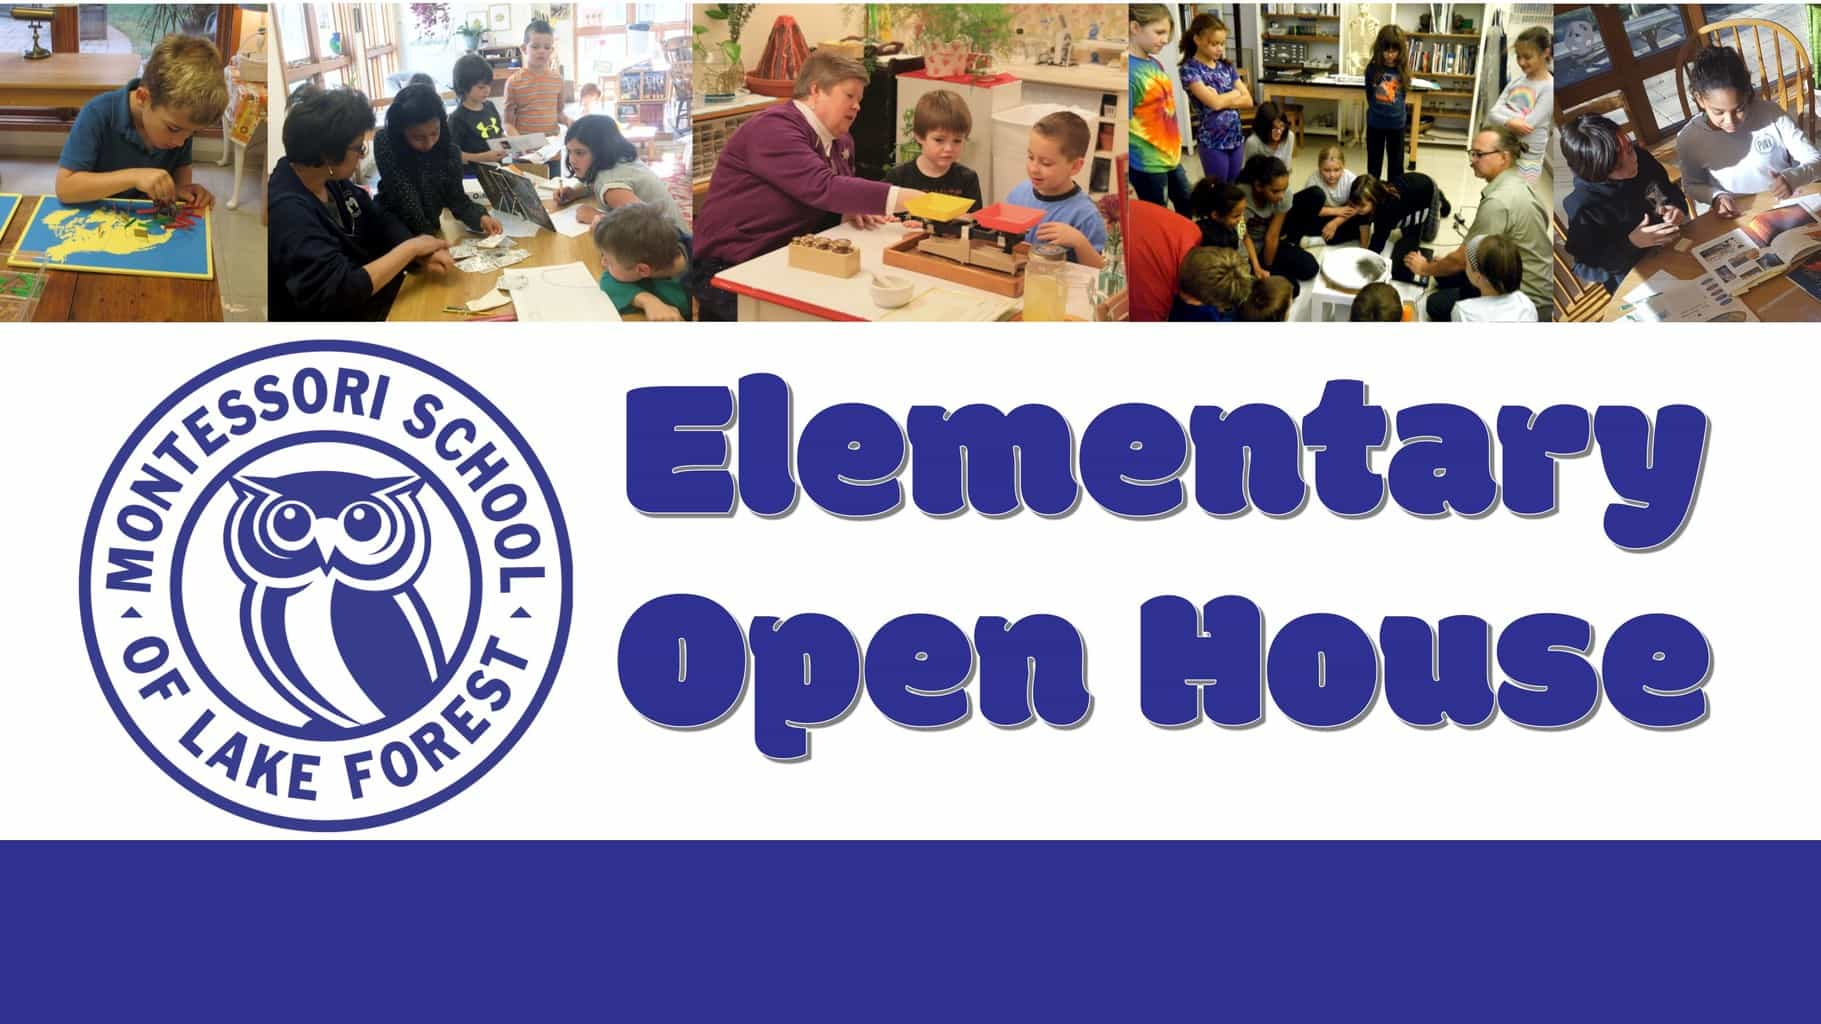 Elementary Open House @ Laurel Drive Campus